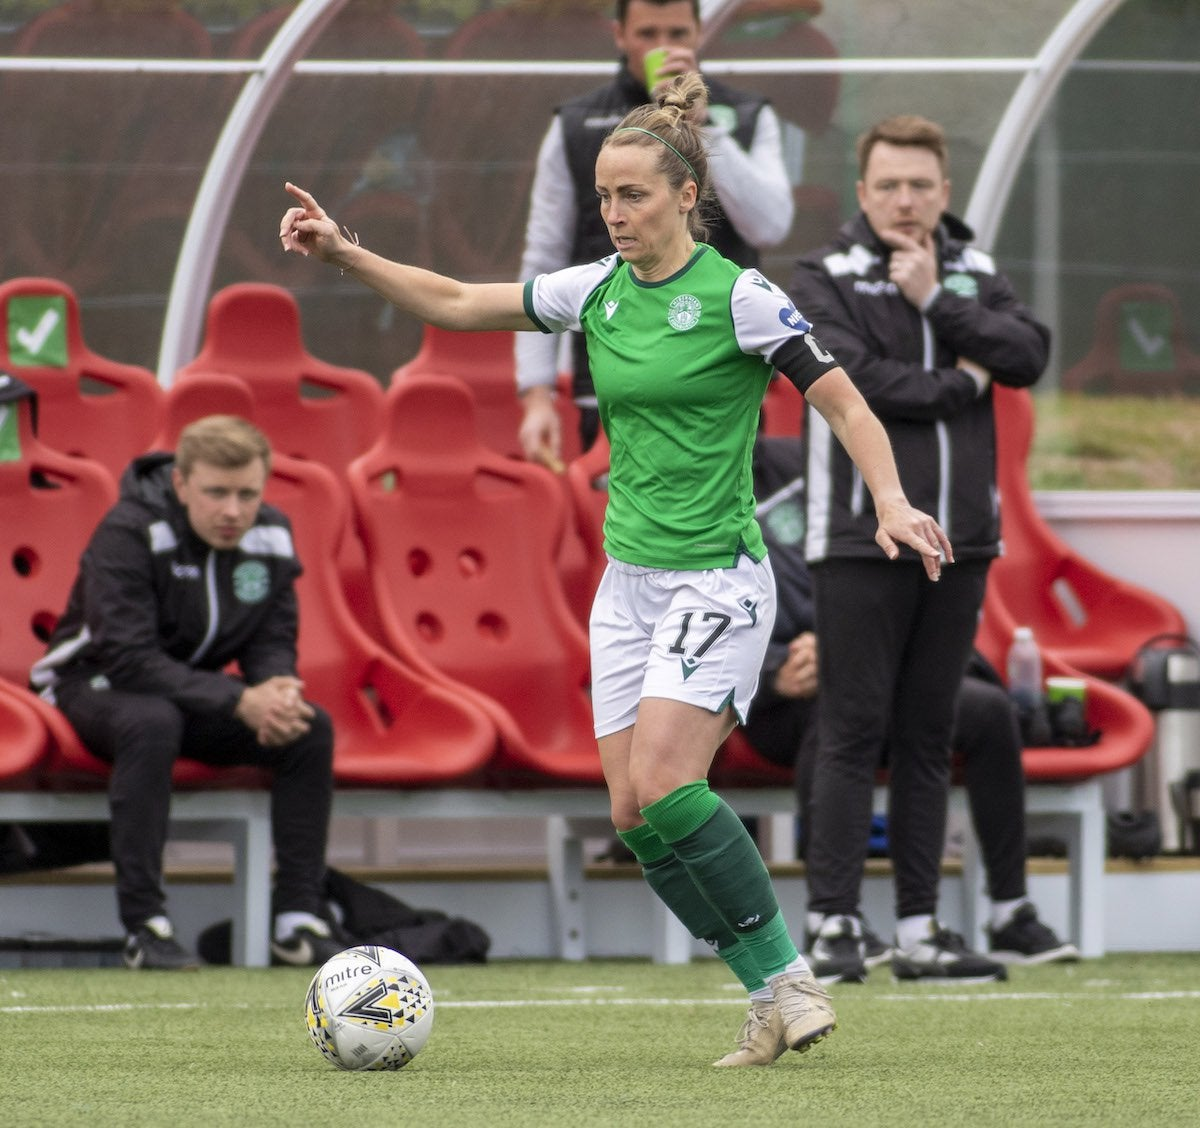 Hibernian will make history this weekend when their end of season SWPL clash with Forfar Farmington FC becomes the first ever football match to be streamed live on pioneering sports platform Recast : WomensSoccer